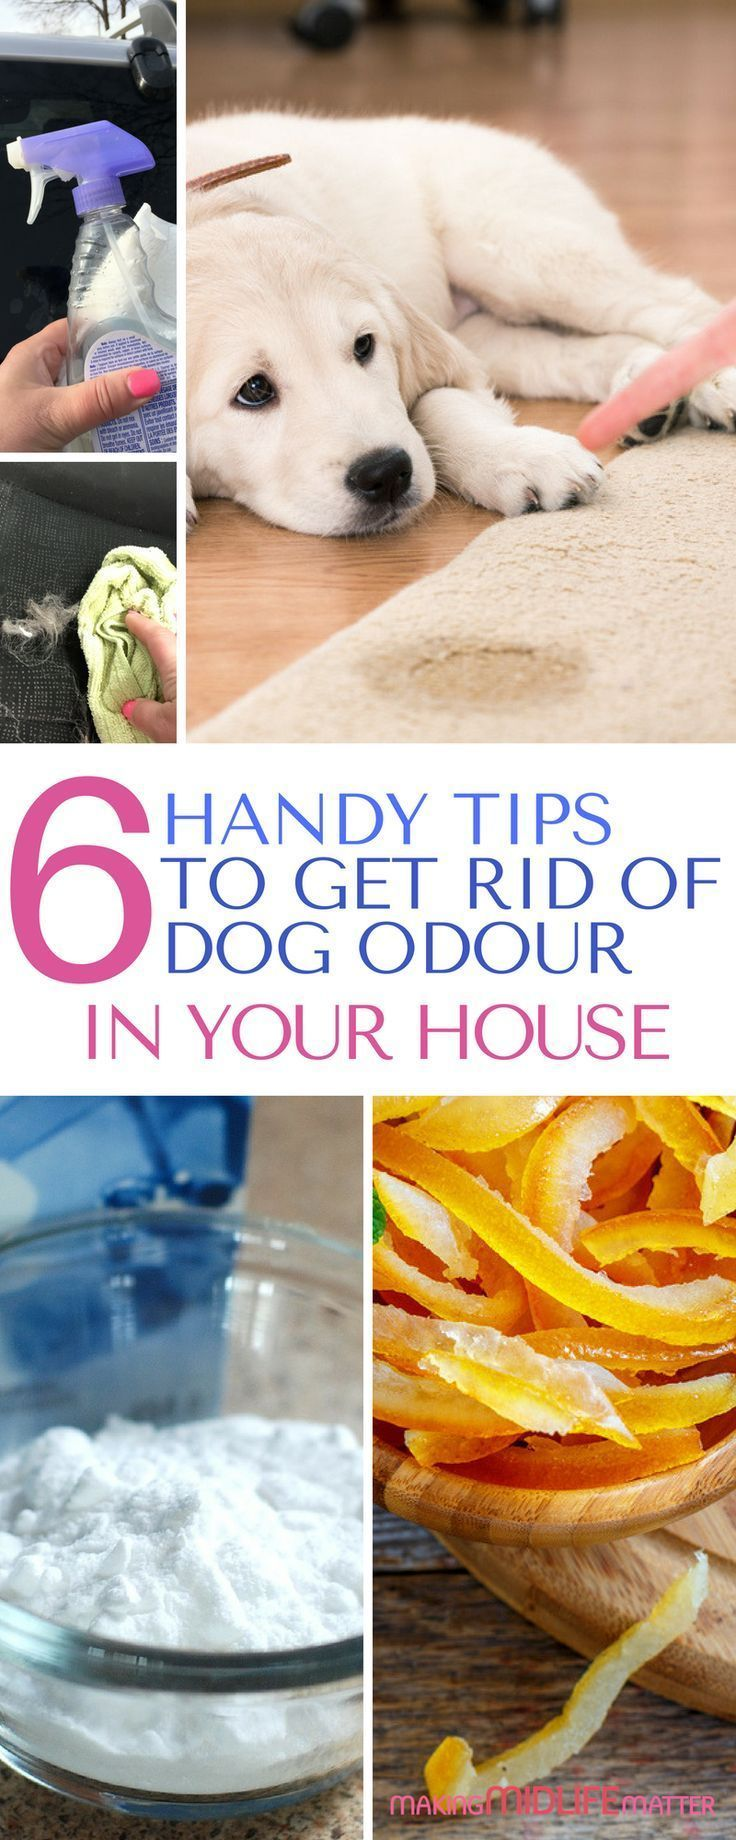 6 Handy Tips To Get Rid Of Dog Odour In Your House Dog Smells